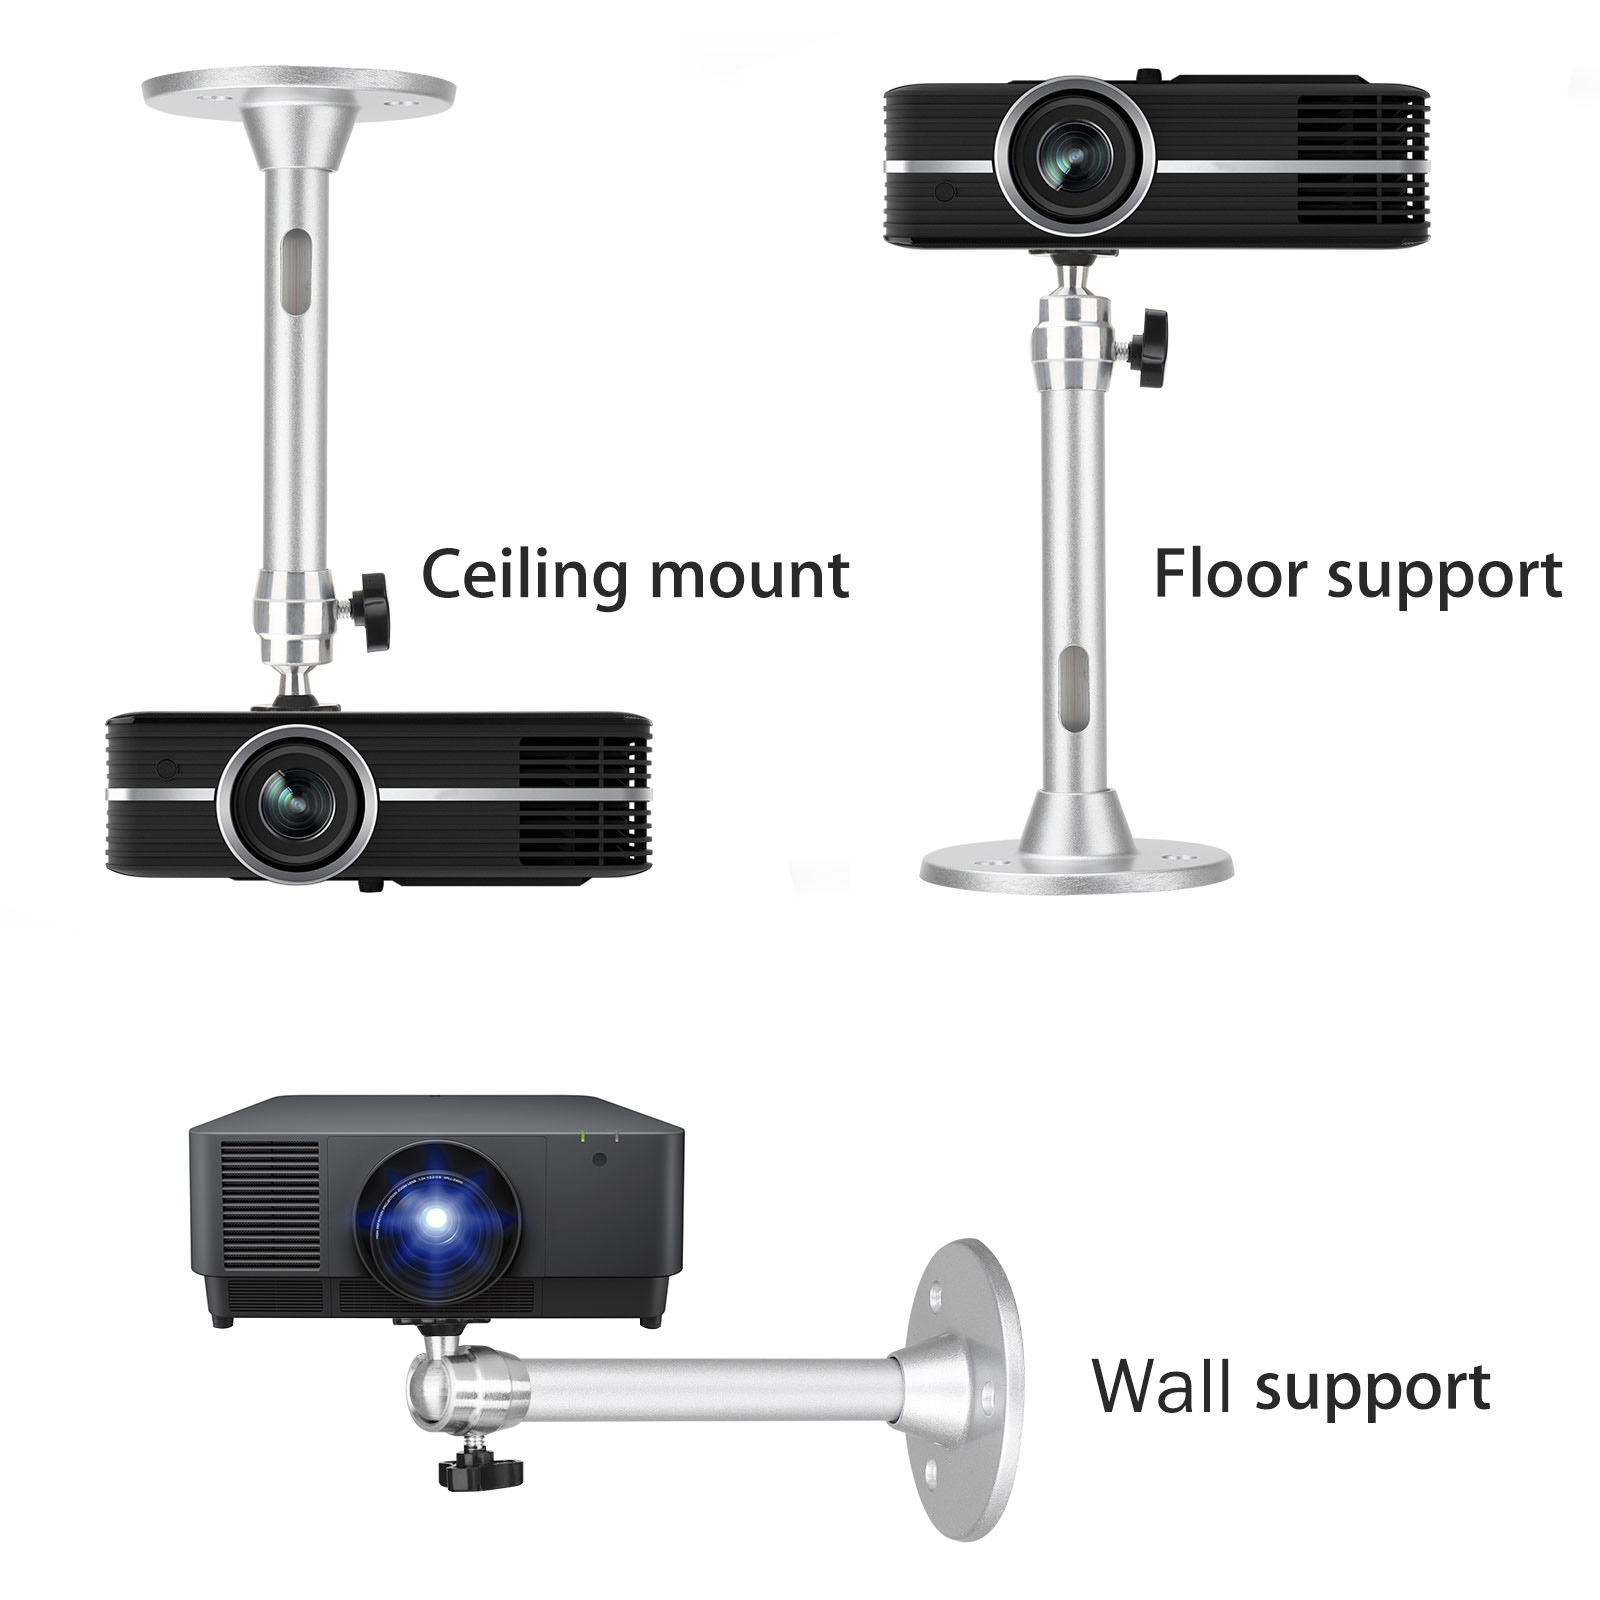 7.2 inch 18cm Mini Projector Wall Ceiling Mount 11lbs Load mounting Bracket for Mini Projector Camera 360 /° Rotating Head Adjustment Angle Silver